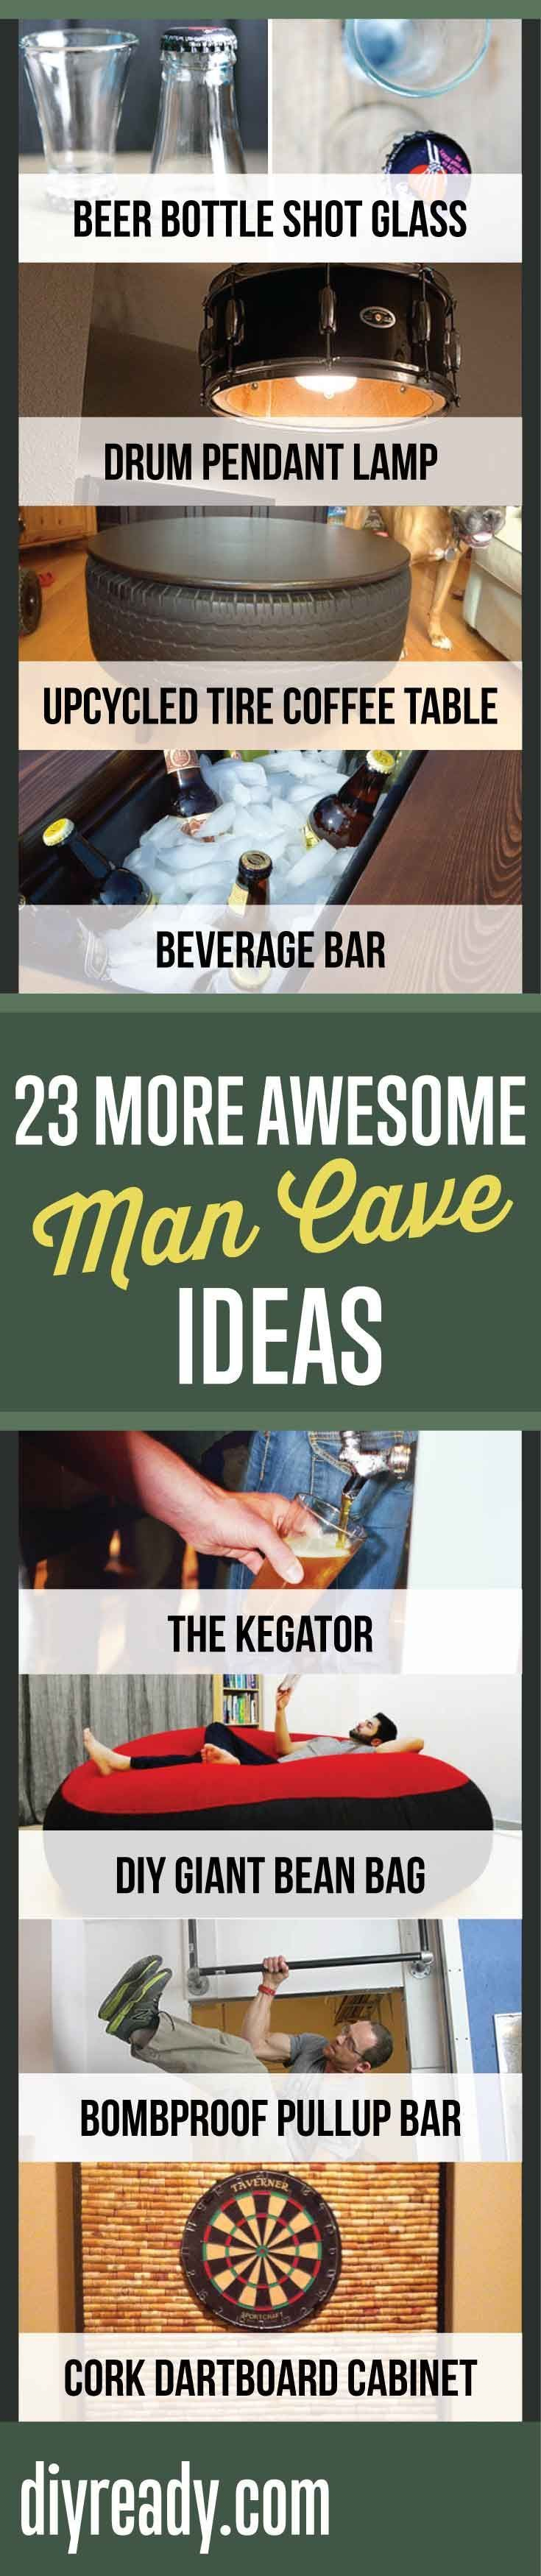 Best man cave installation ideas 23 - 23 More Awesome Man Cave Ideas Cool Ideas For Your Man Cave By Diy Ready